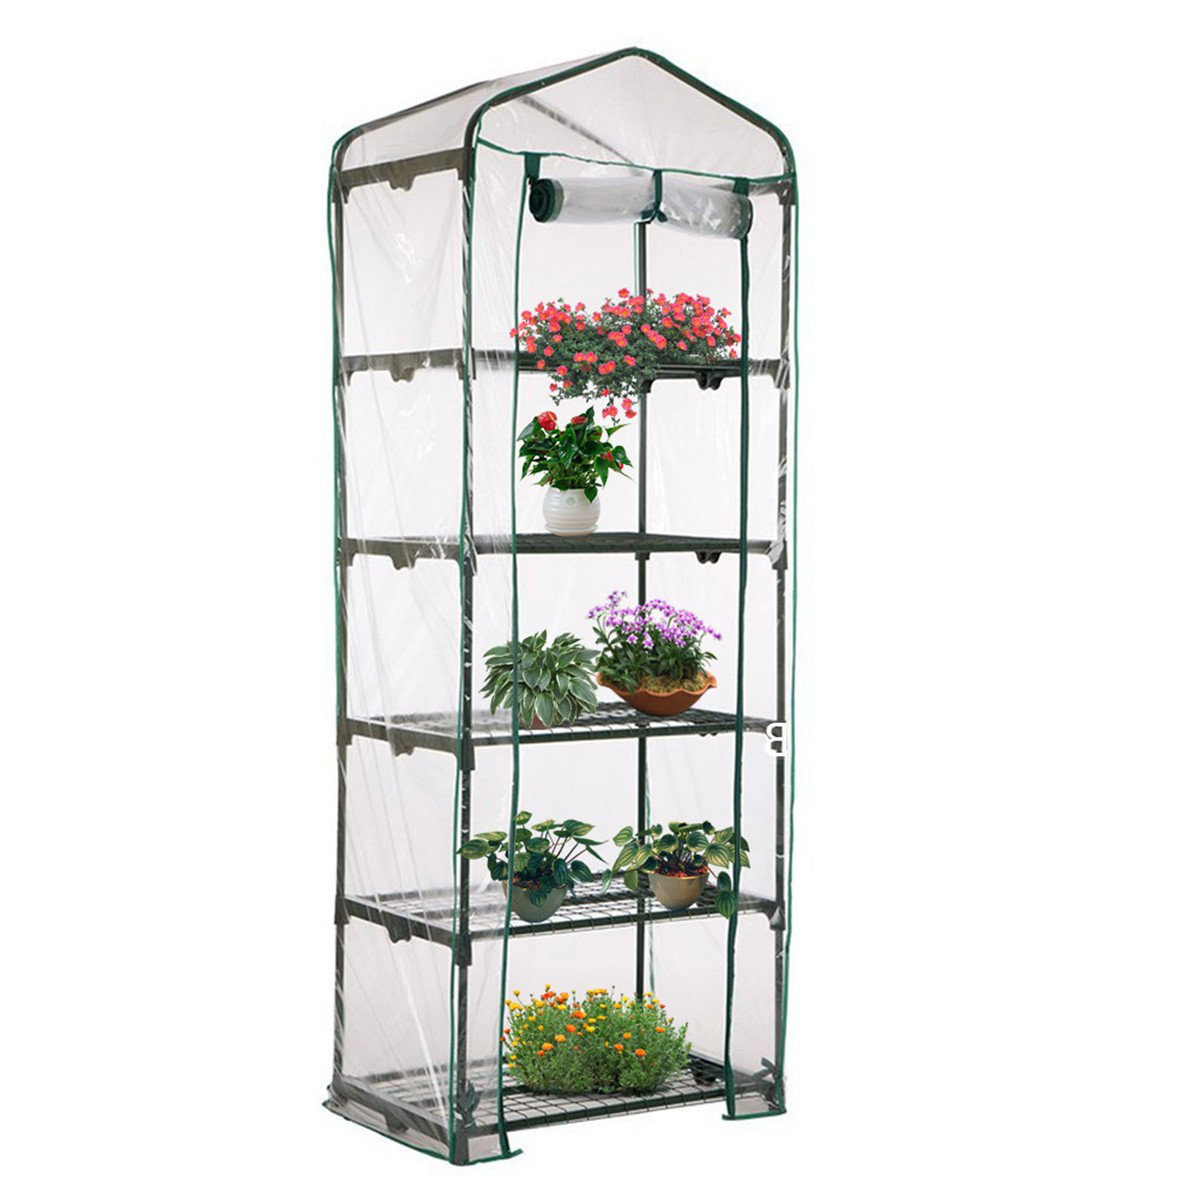 Kisstaker Greenhouse Cover, 69 x 49 x 187cm Apex Roof 5-Tiers Garden Greenhouse Hot Plant House Shelf Shed Clear PVC Cover